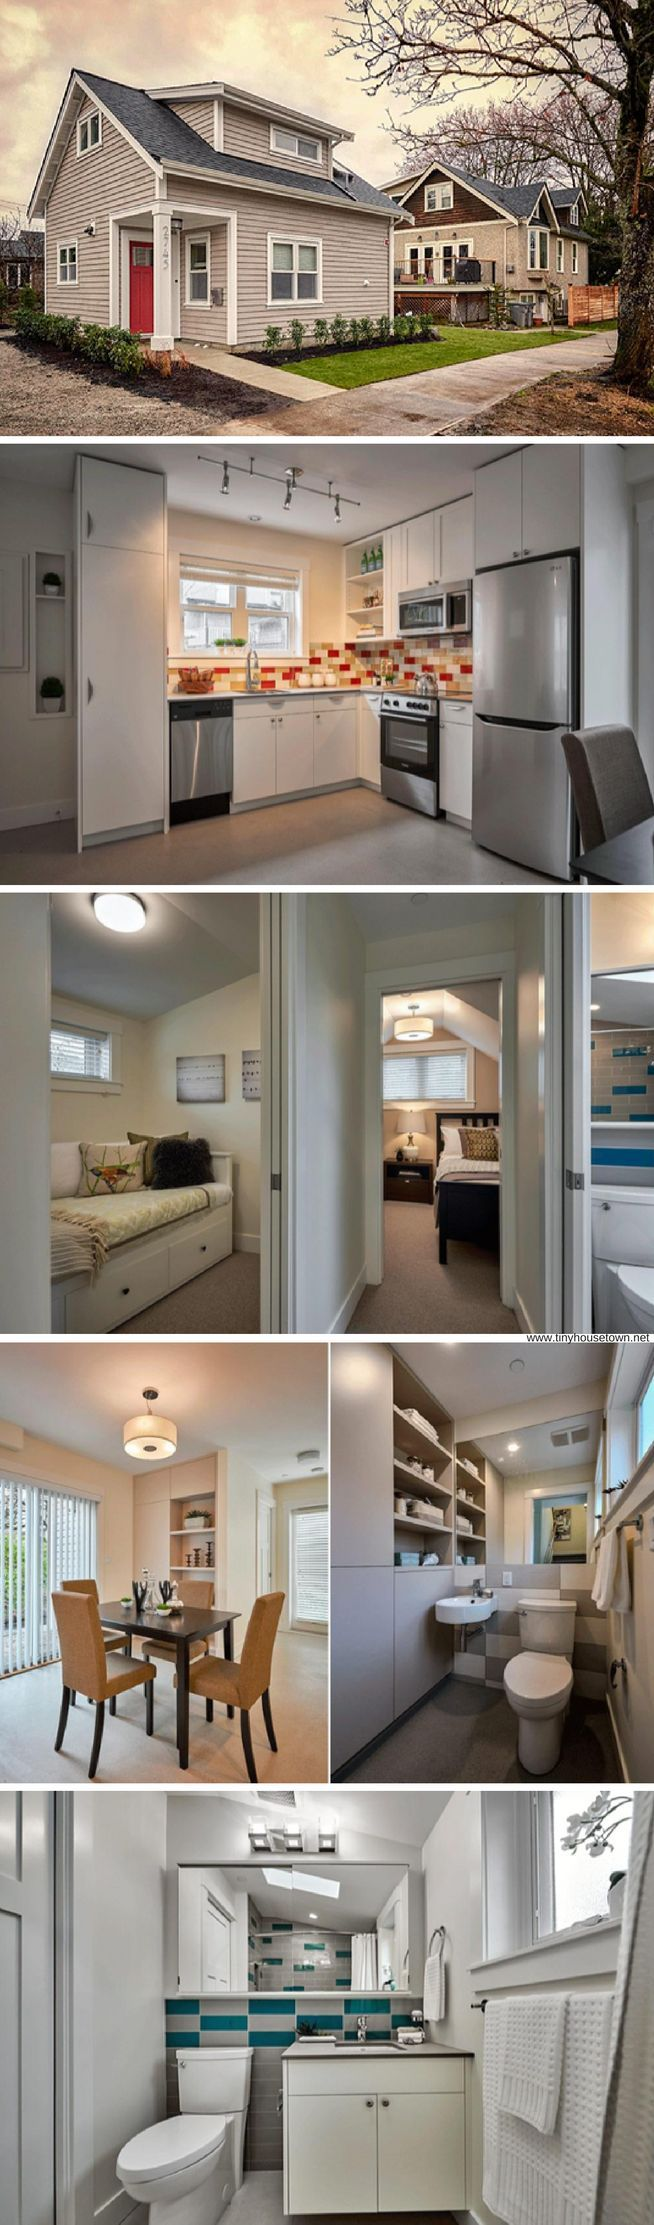 A Vancouver laneway house that spans just 670 sq ft! | Future ...